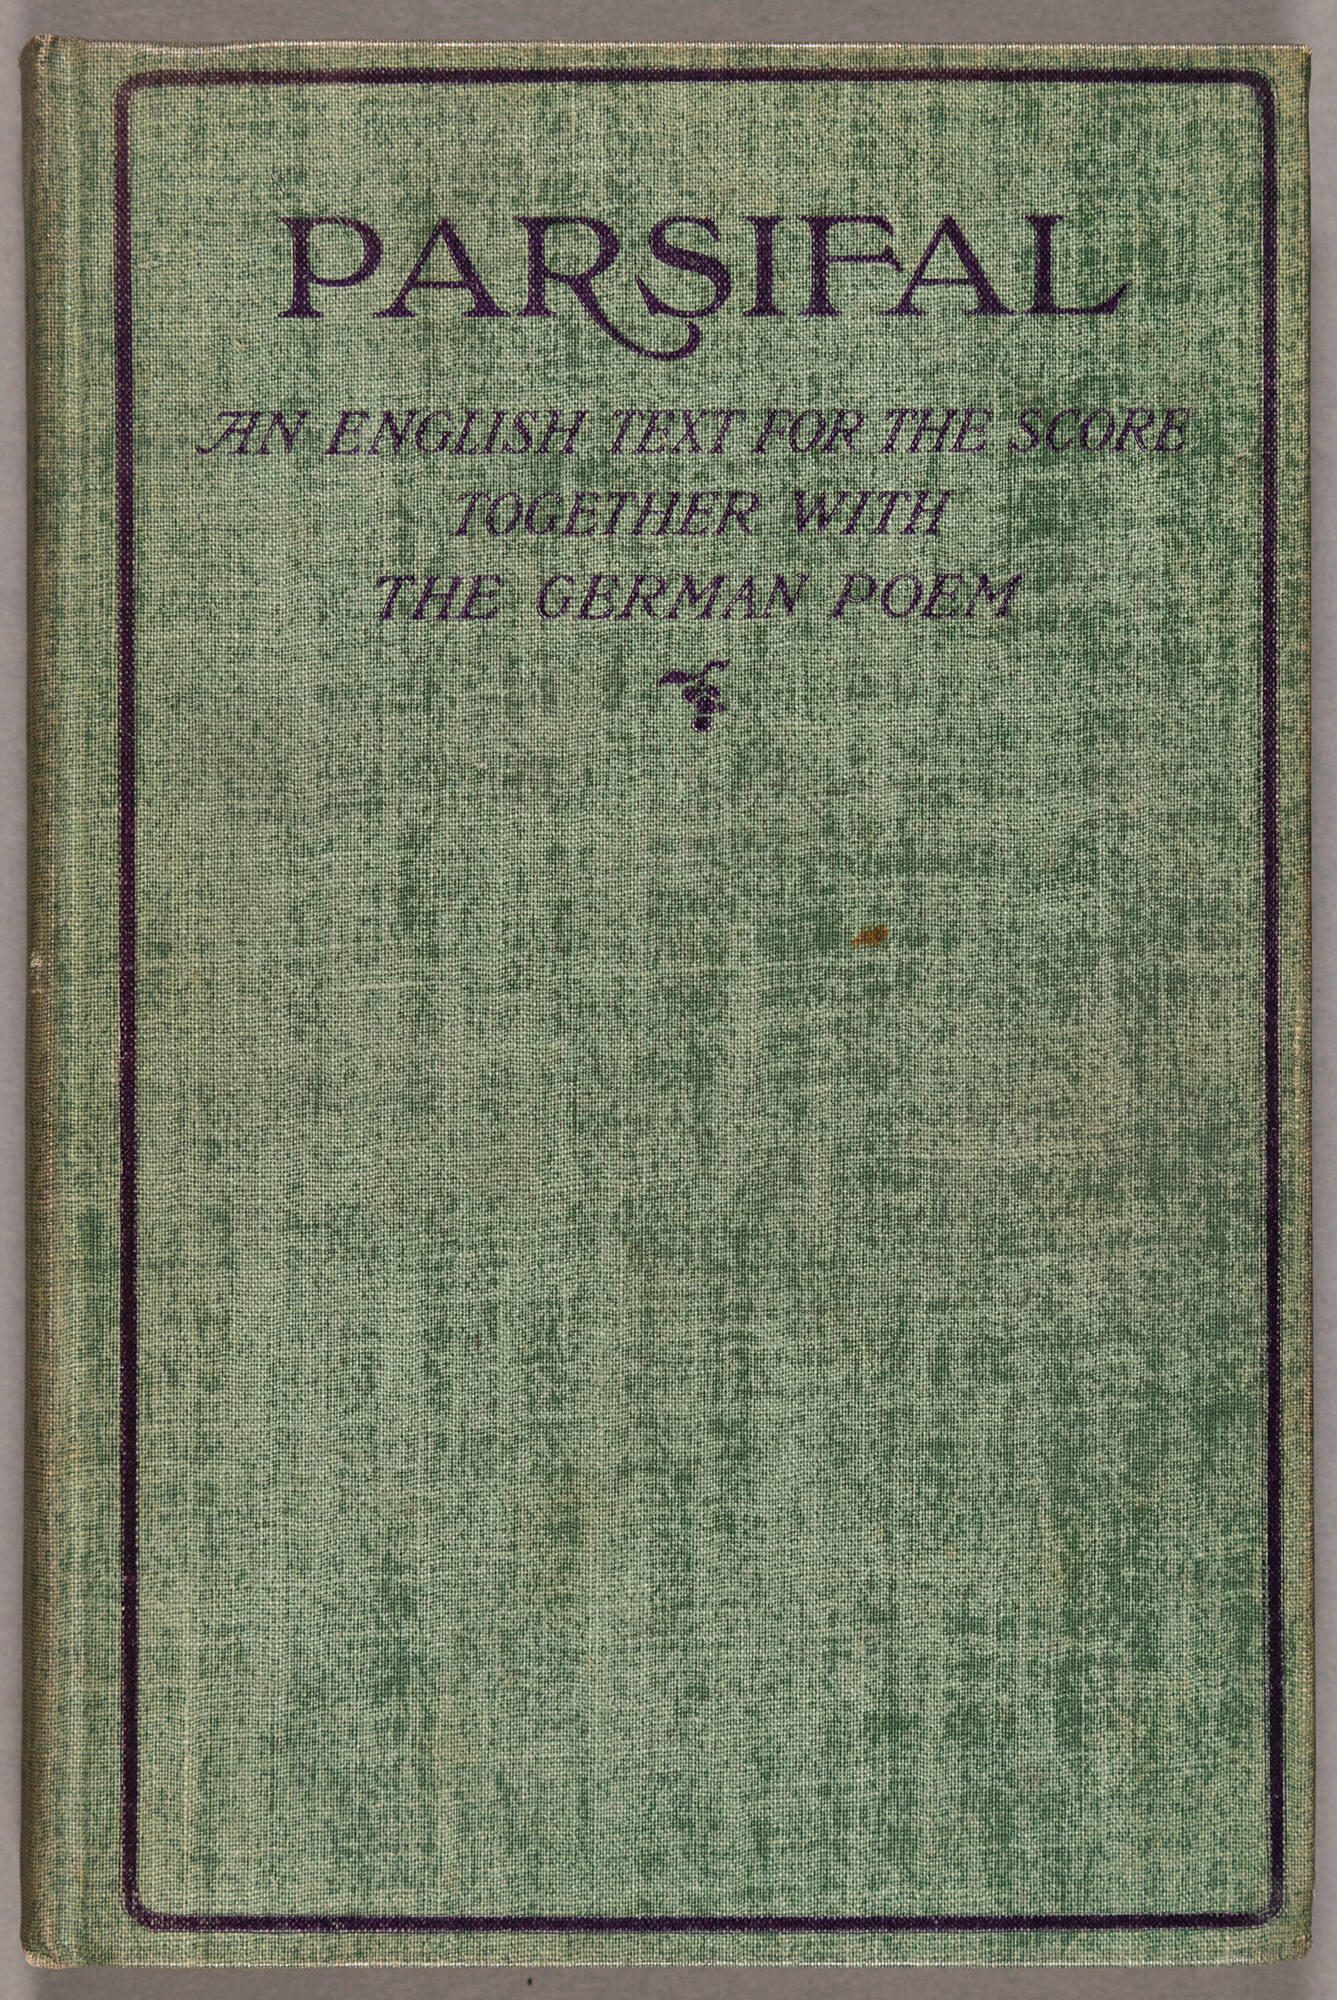 Parsival cover from 1903.